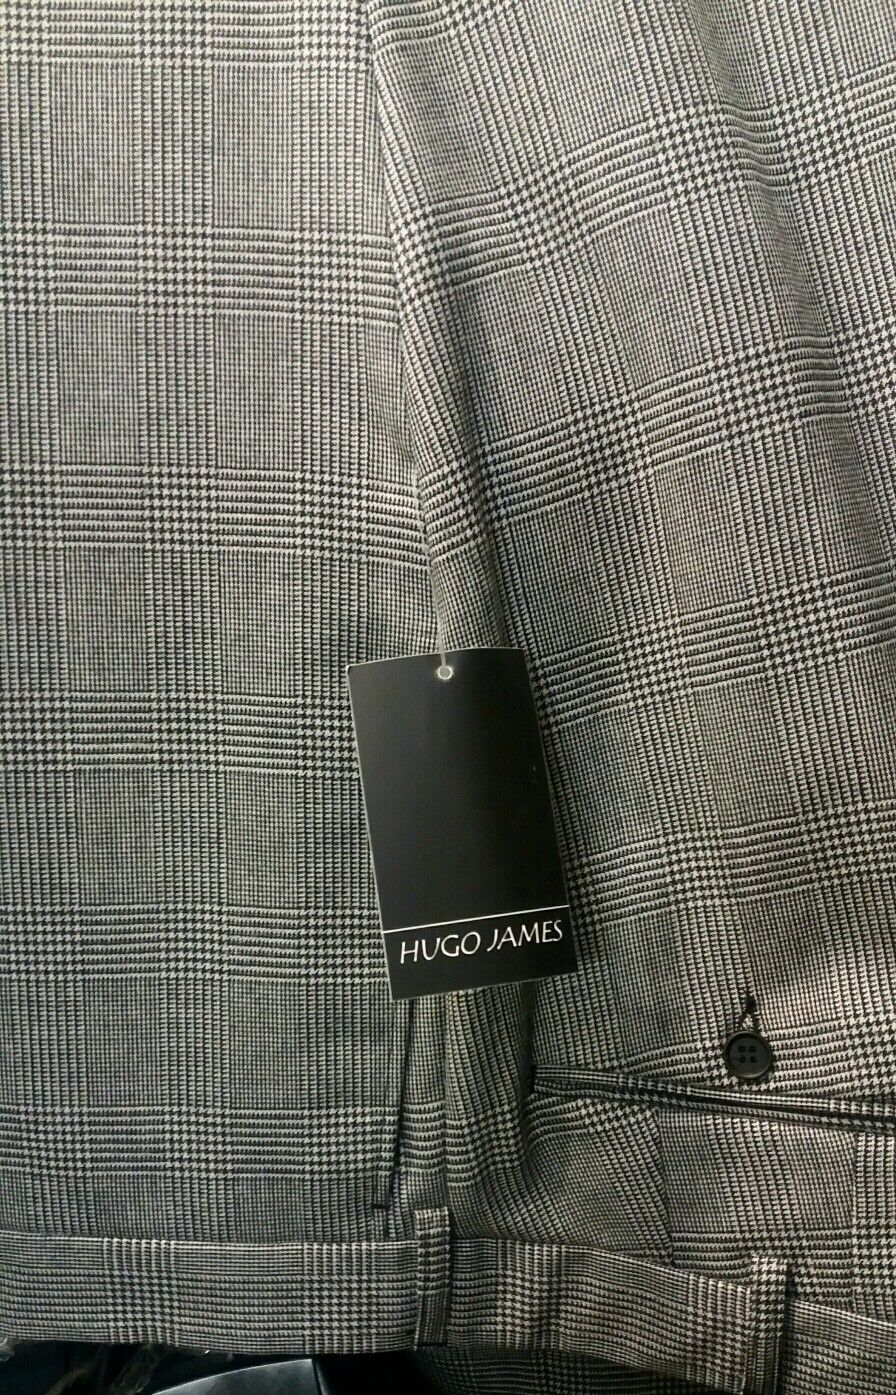 HUGO JAMES PRINCE OF WALES SUIT trousers 42